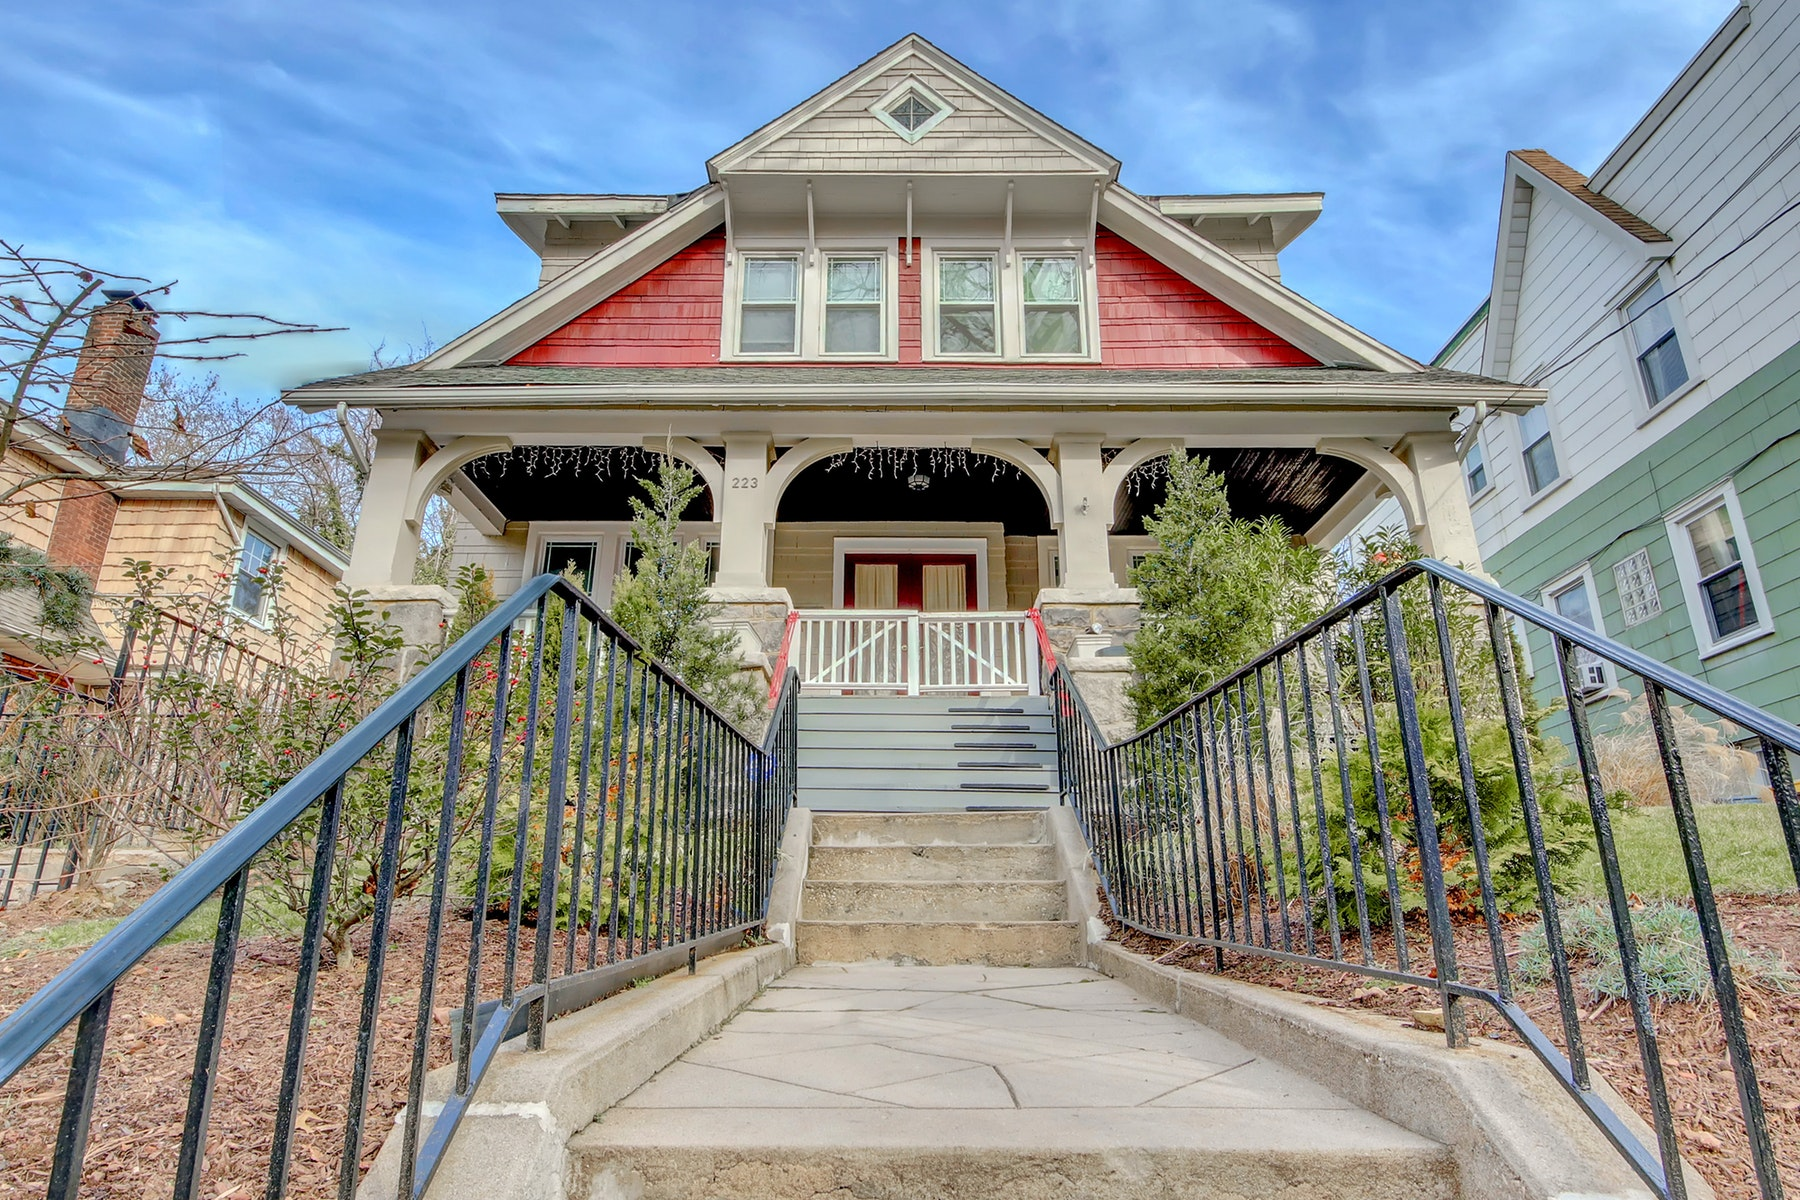 Other Residential for Sale at 223 Hillside Avenue Leonia, New Jersey 07605 United States